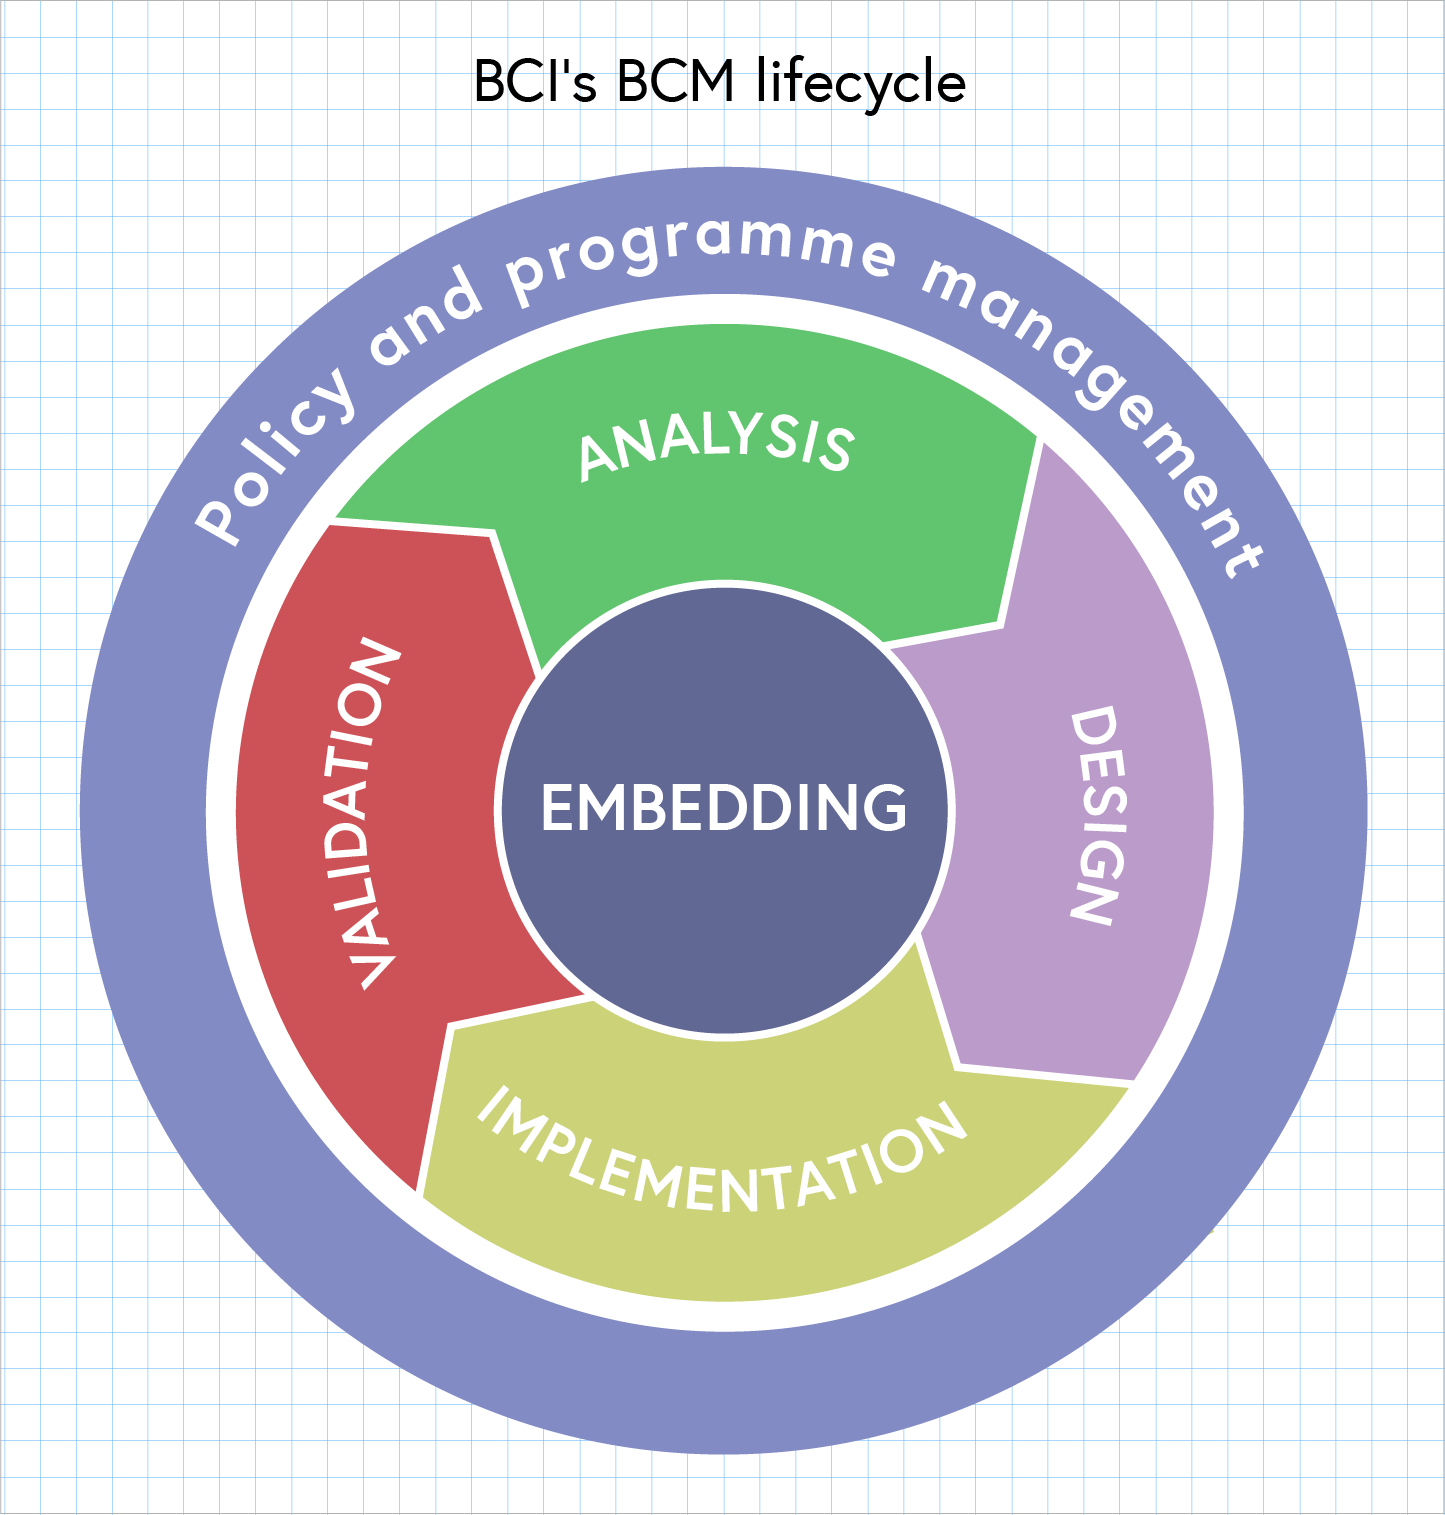 Image of the lifecycle, select the image for an enlarged pdf version with alternative text. the image is also available in the downloads section